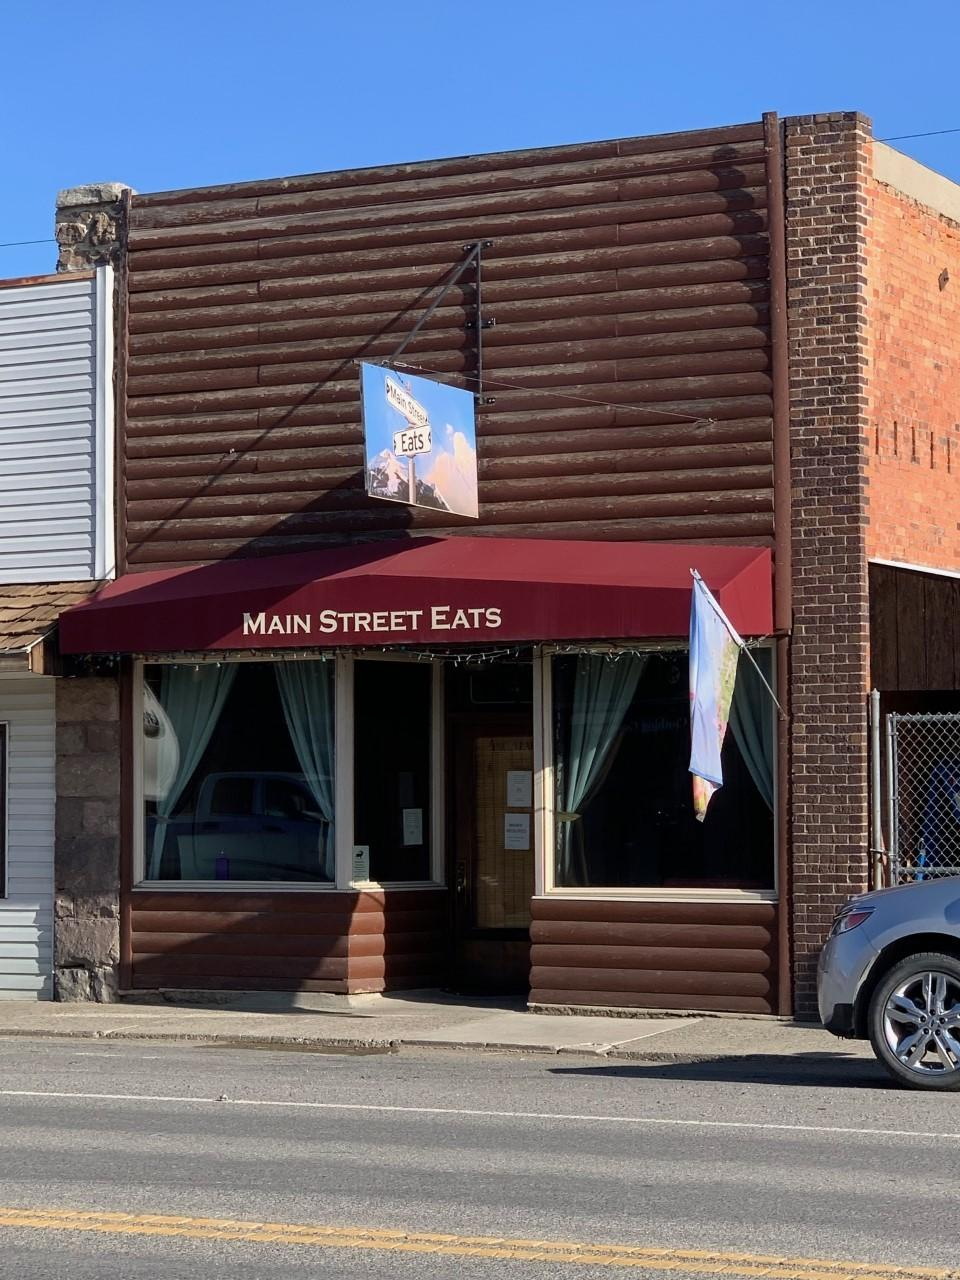 Jump on this fabulous opportunity to own one of the areas favorite eateries! Prime location in downtown East Helena with storefront windows right on Main Street. This one even has a covered outdoor seating space and storeroom. Either buy the building and grow your own business or buy the building with the existing Main Street Eats   inventory, menu and training from the best! ($325,000) 2 pizza ovens, grill, coolers smallwares and more! East Helena is growing in leaps and bounds, get on the bandwagon with this proven success story! Call Tobie McDonnell at 406-202-3272 or your real estate professional for more information!